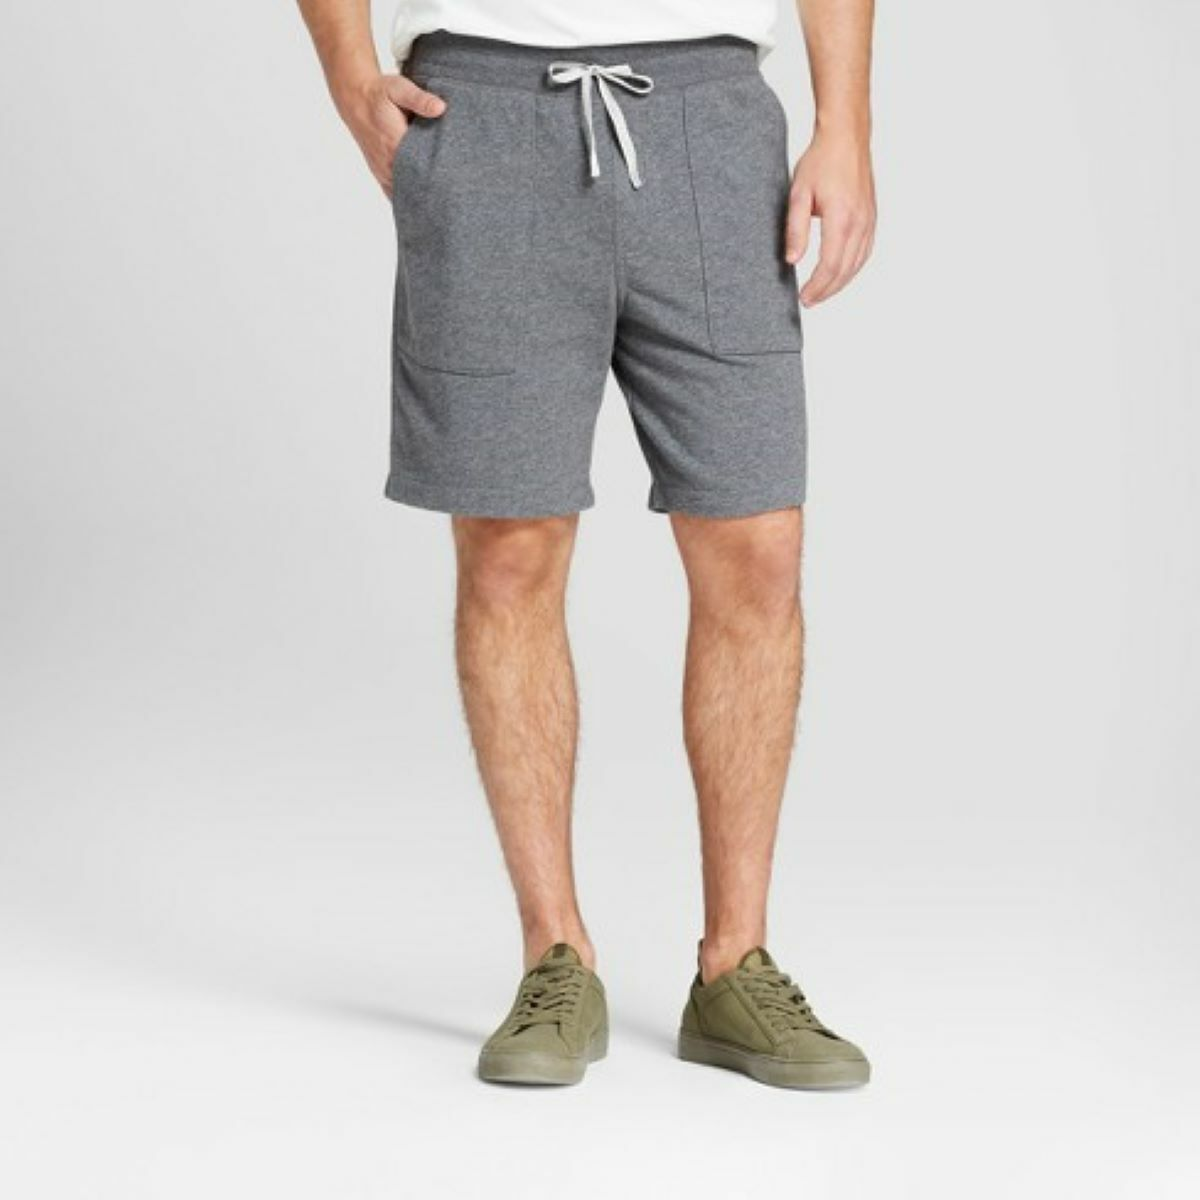 Mens French Terry Knit Shorts Summer Lounge Dark Grey Small